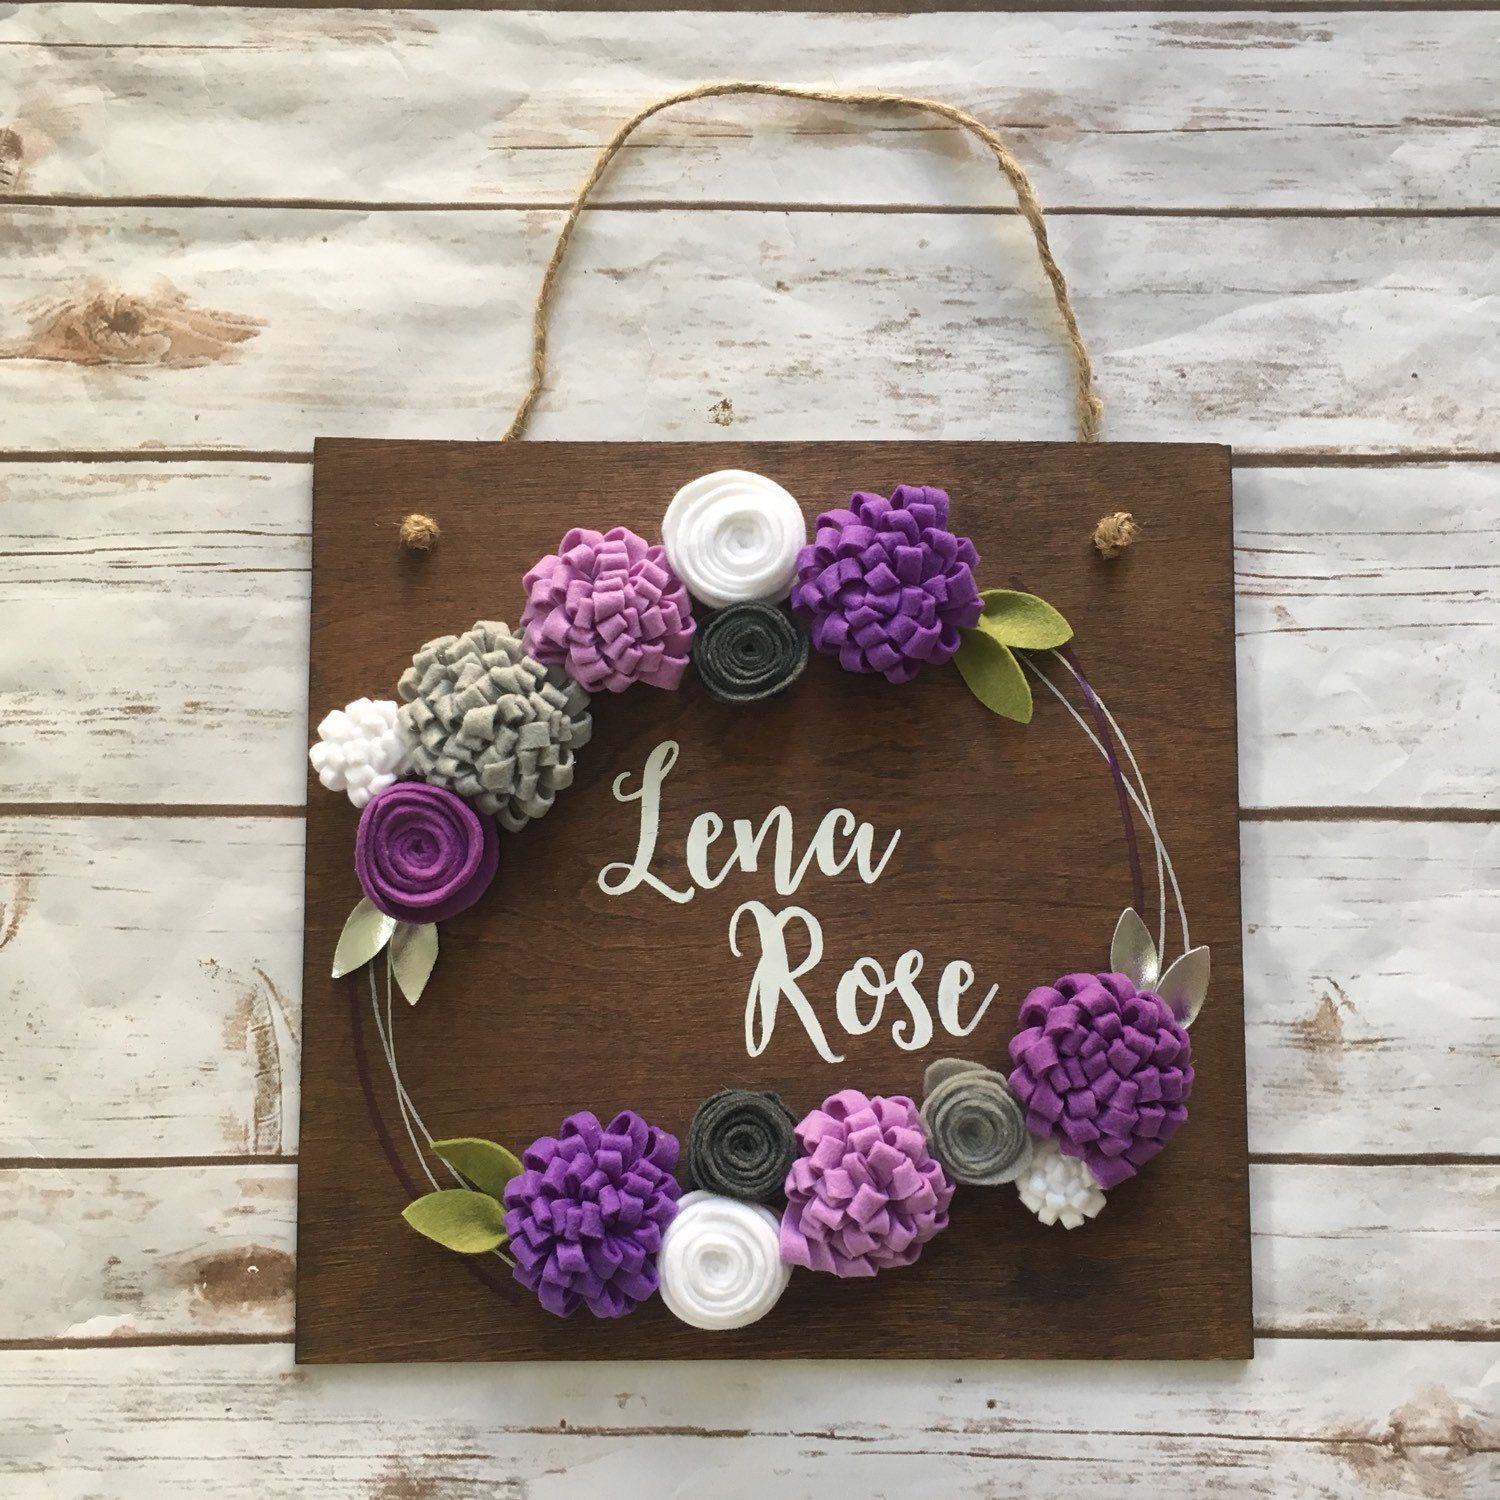 This personalized sign makes a thoughtful and unique bridal shower gift.